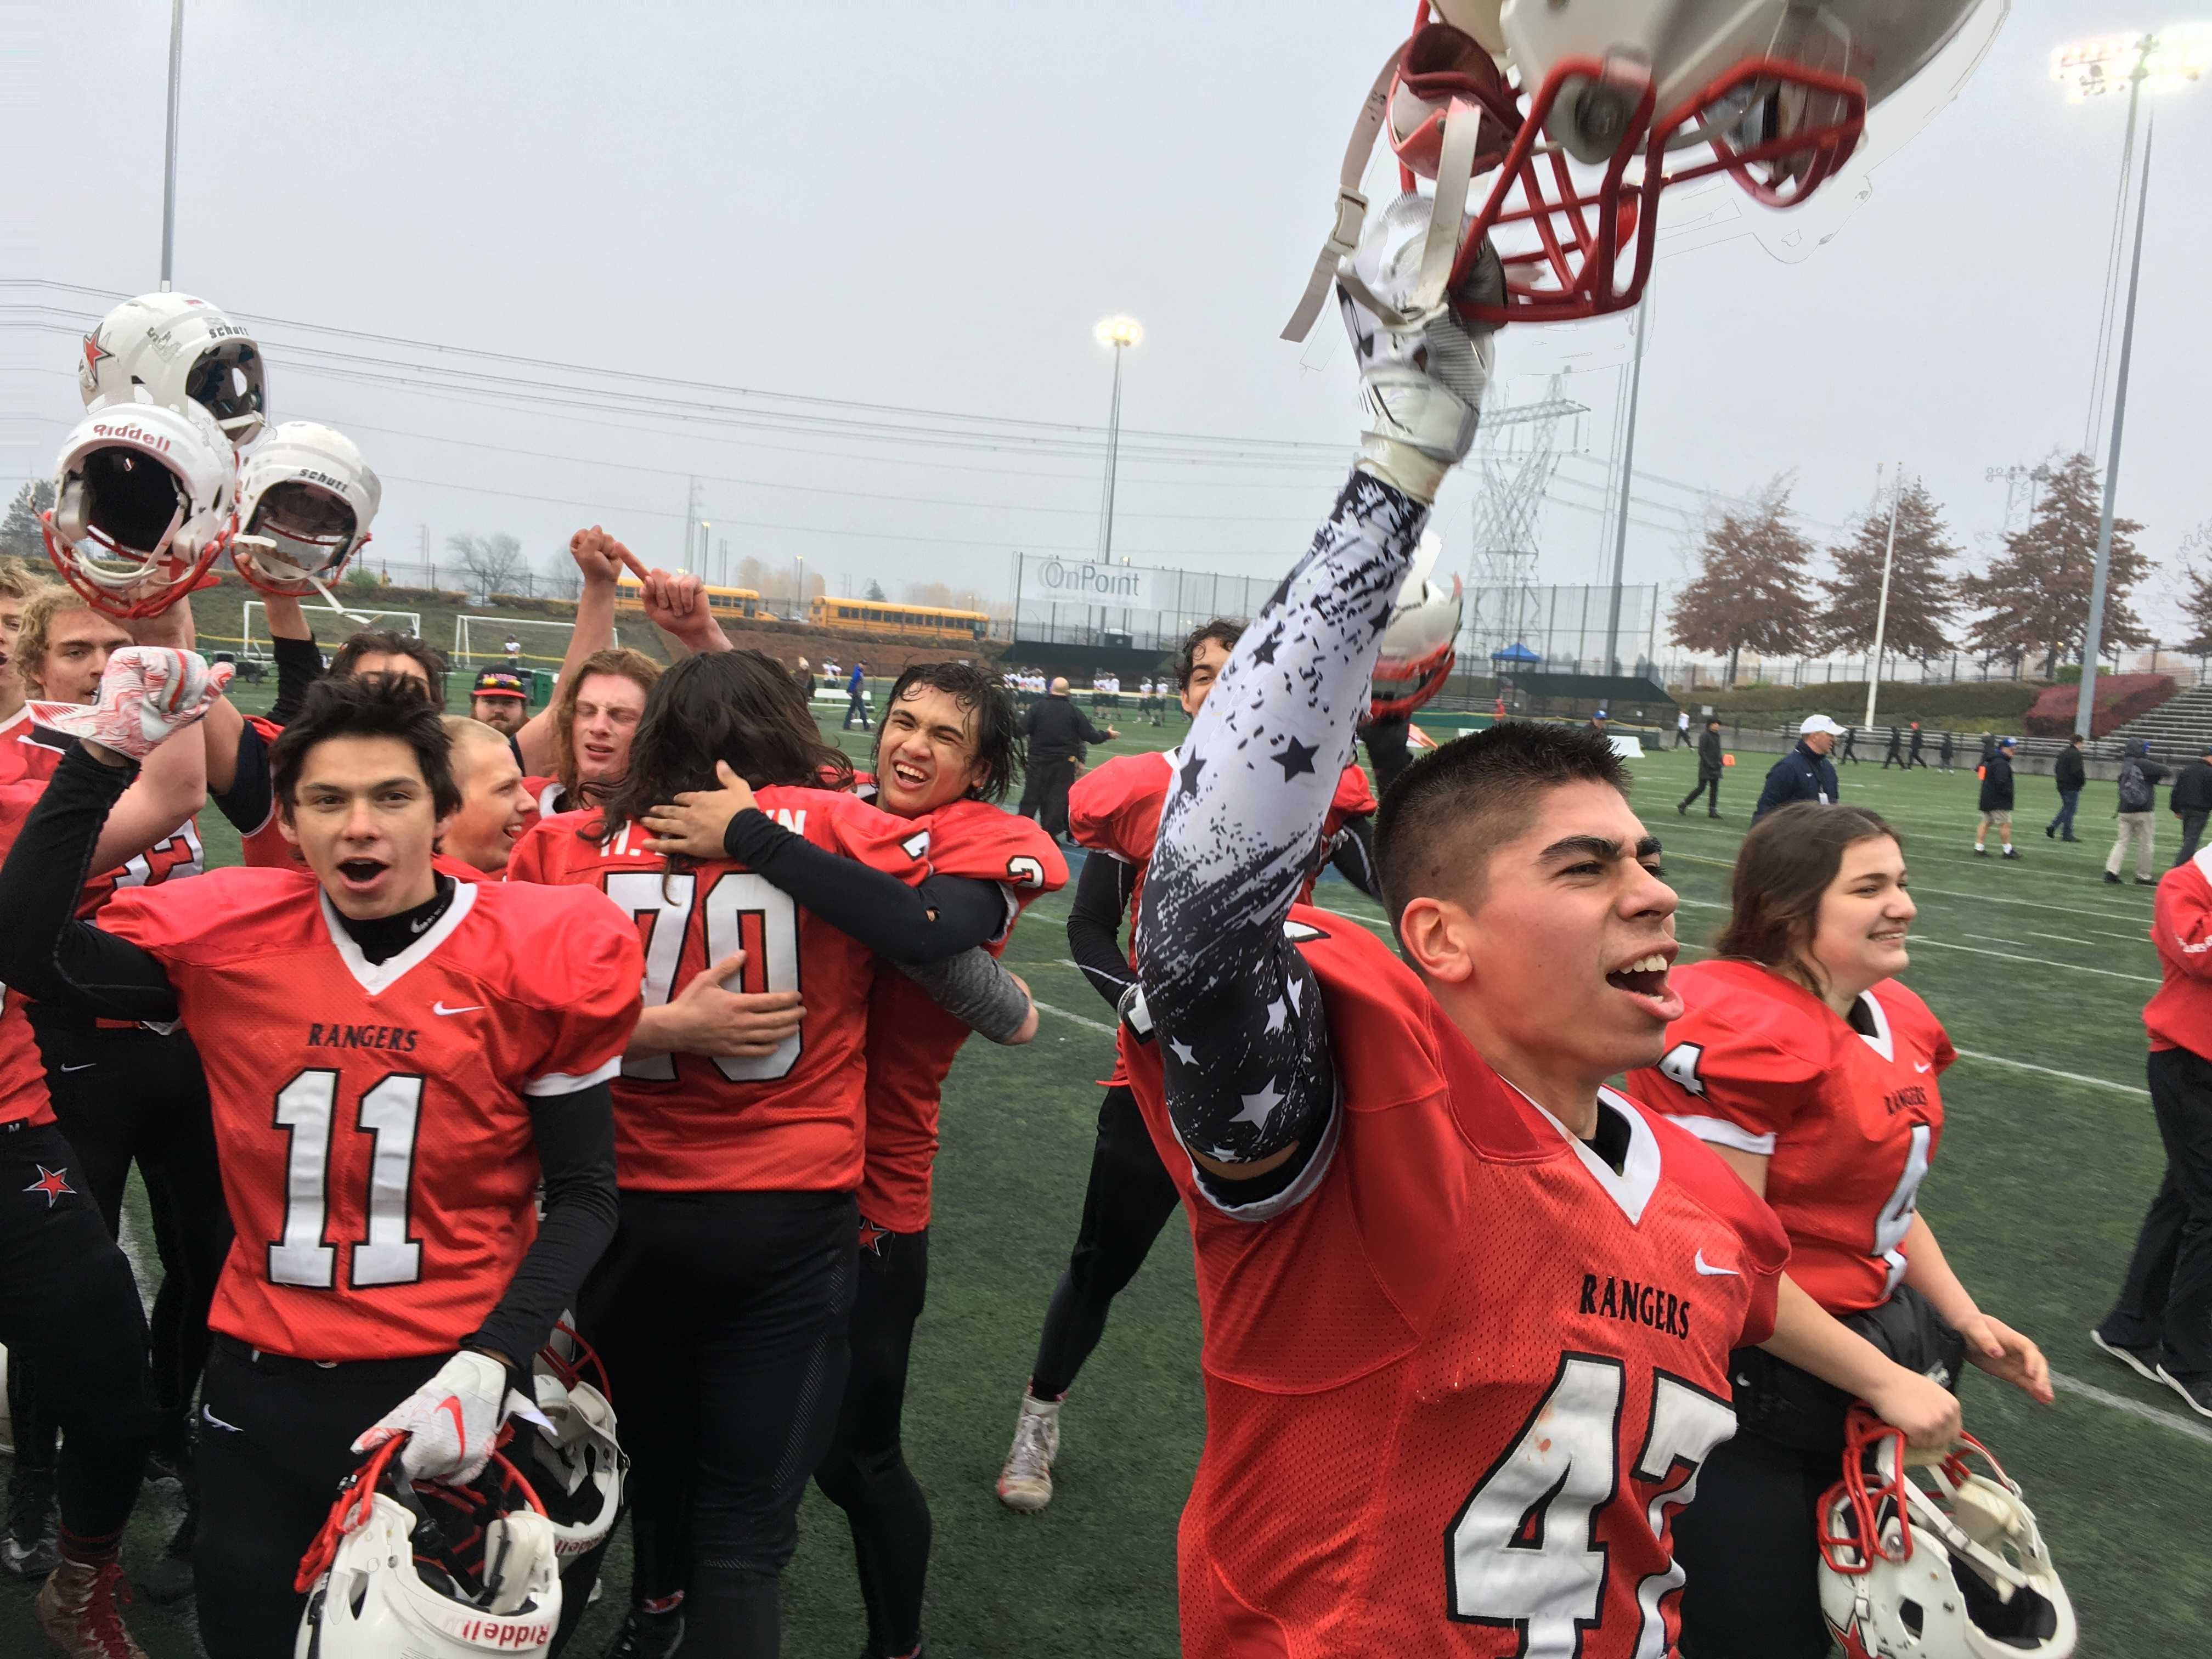 Four-time reigning 1A football champion Dufur is a member of the Big Sky League.